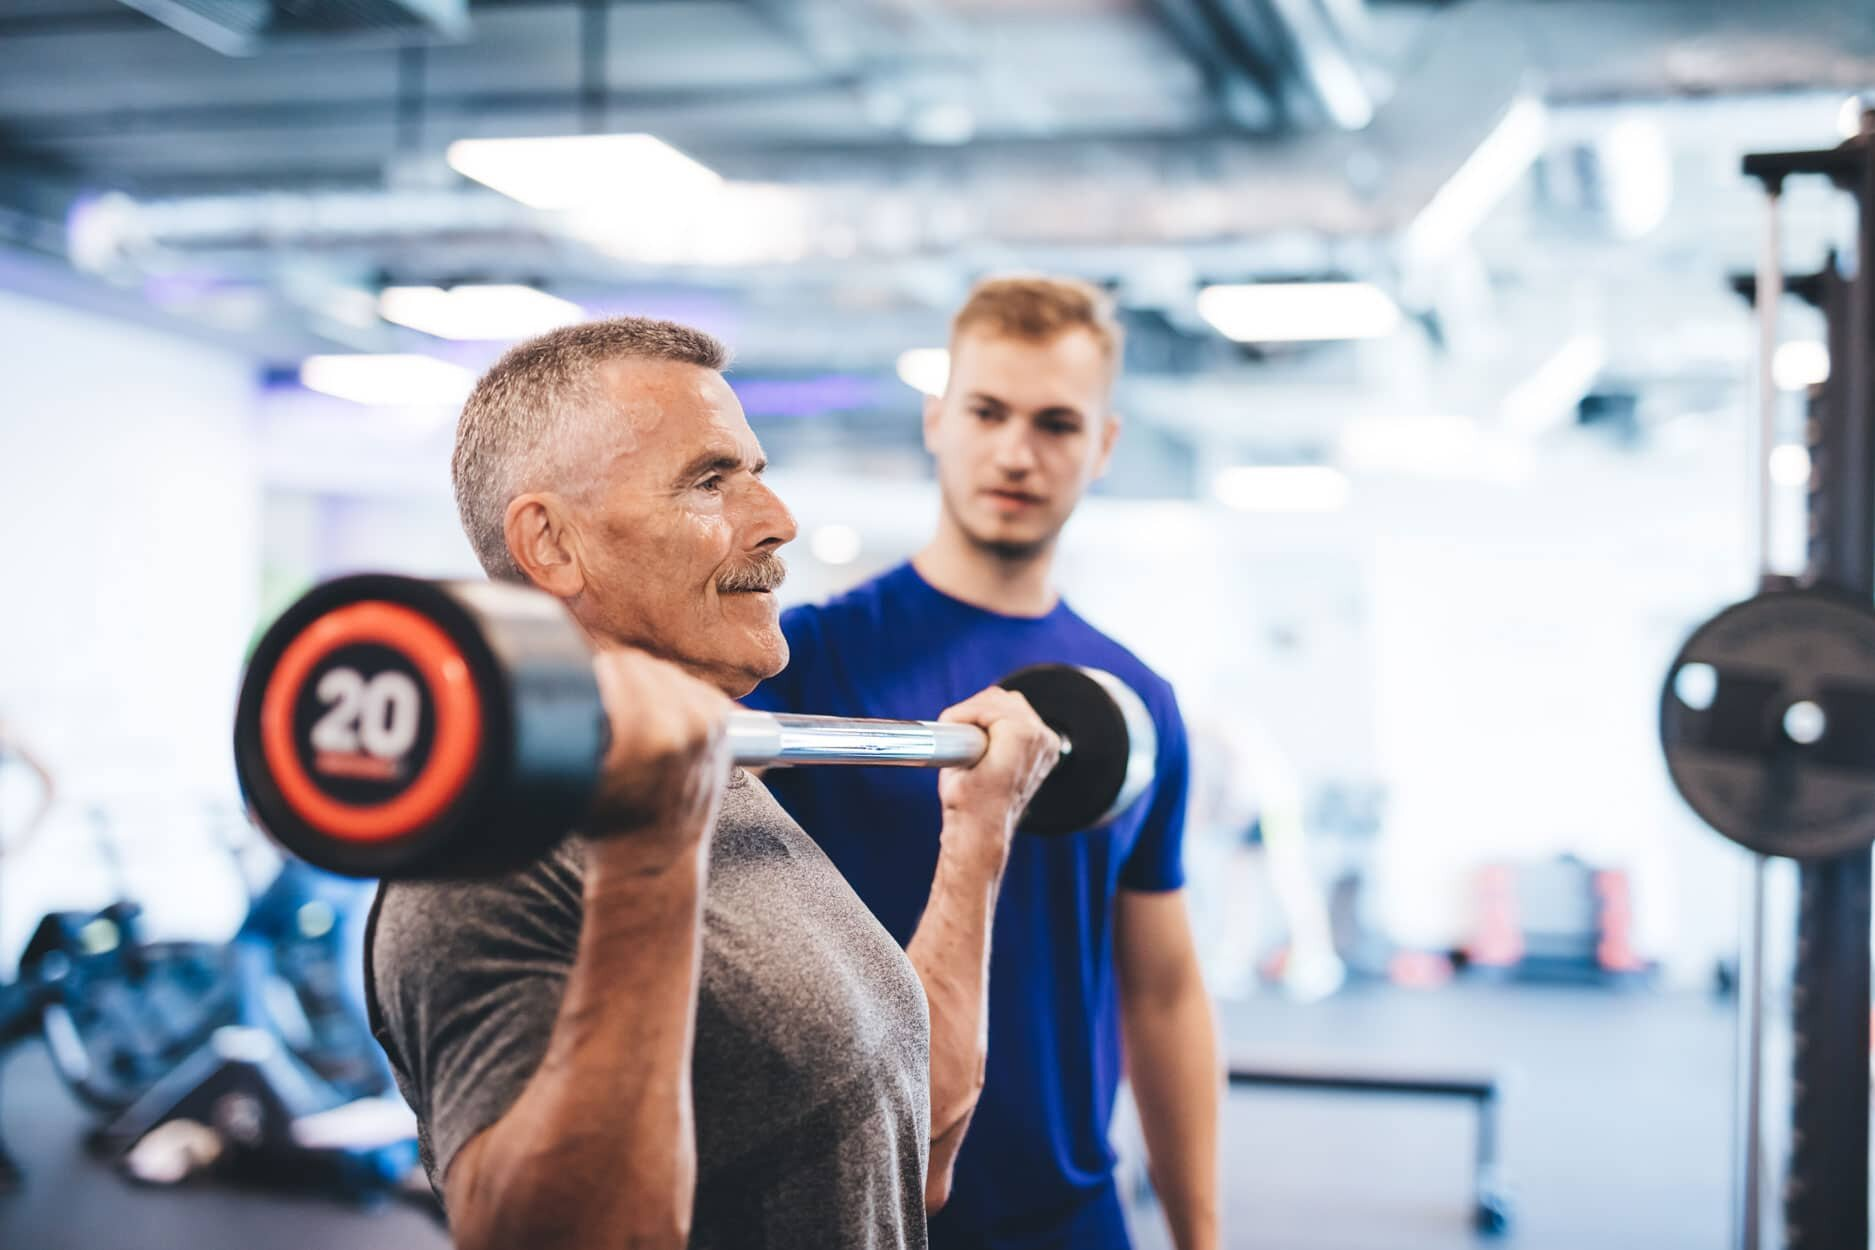 personal training worcester fitness